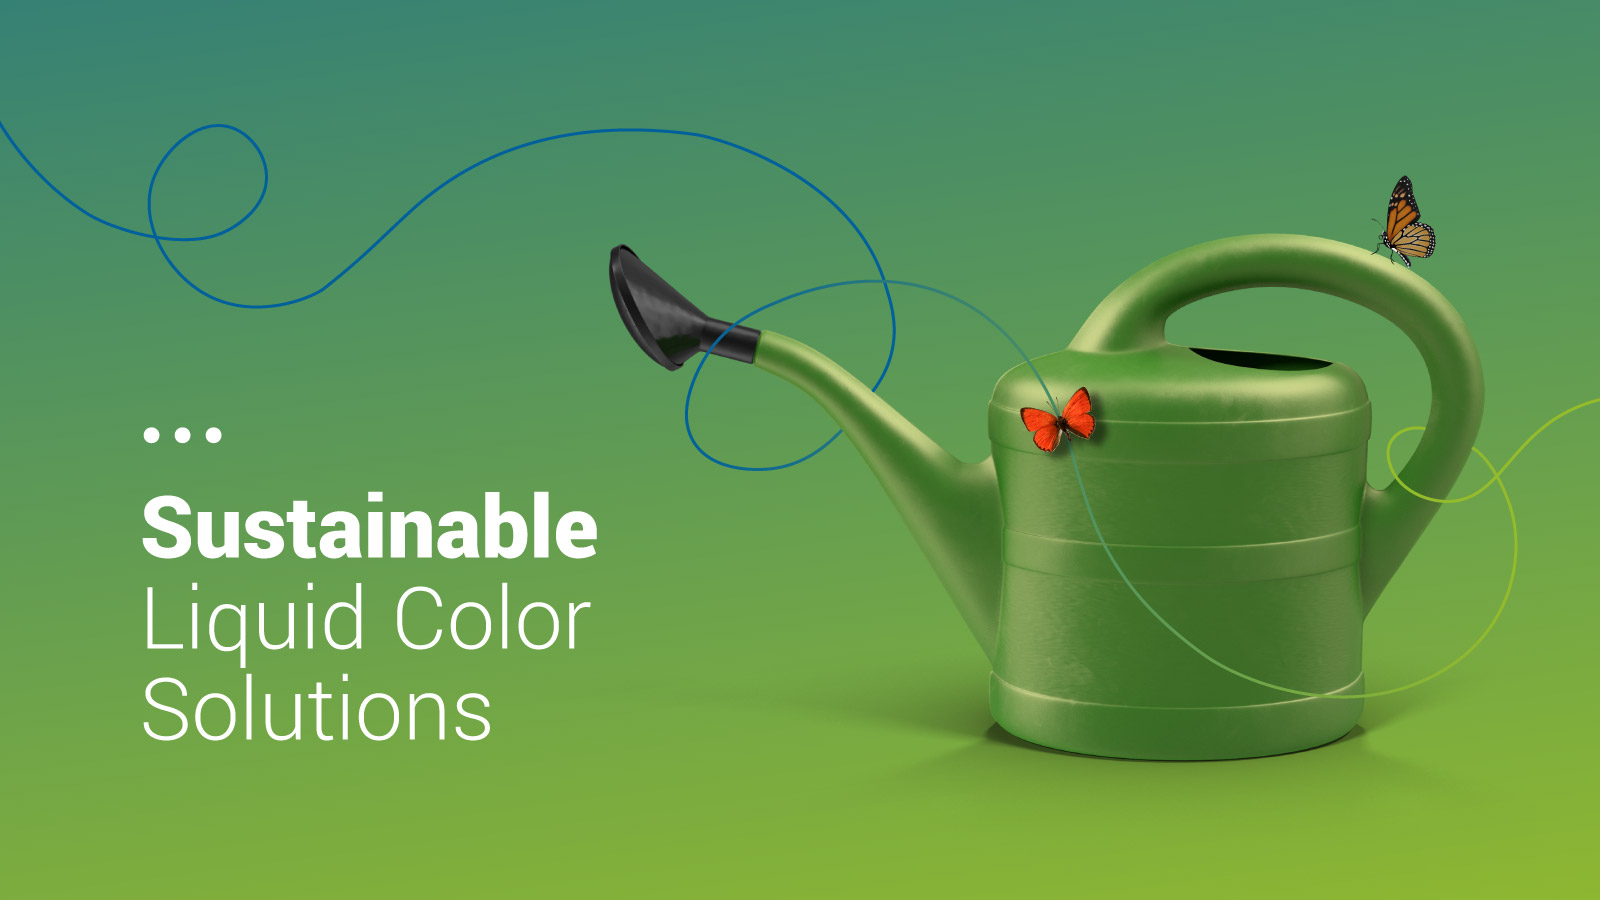 Sustainable colour graphic design with butterflies and plastic watering can.